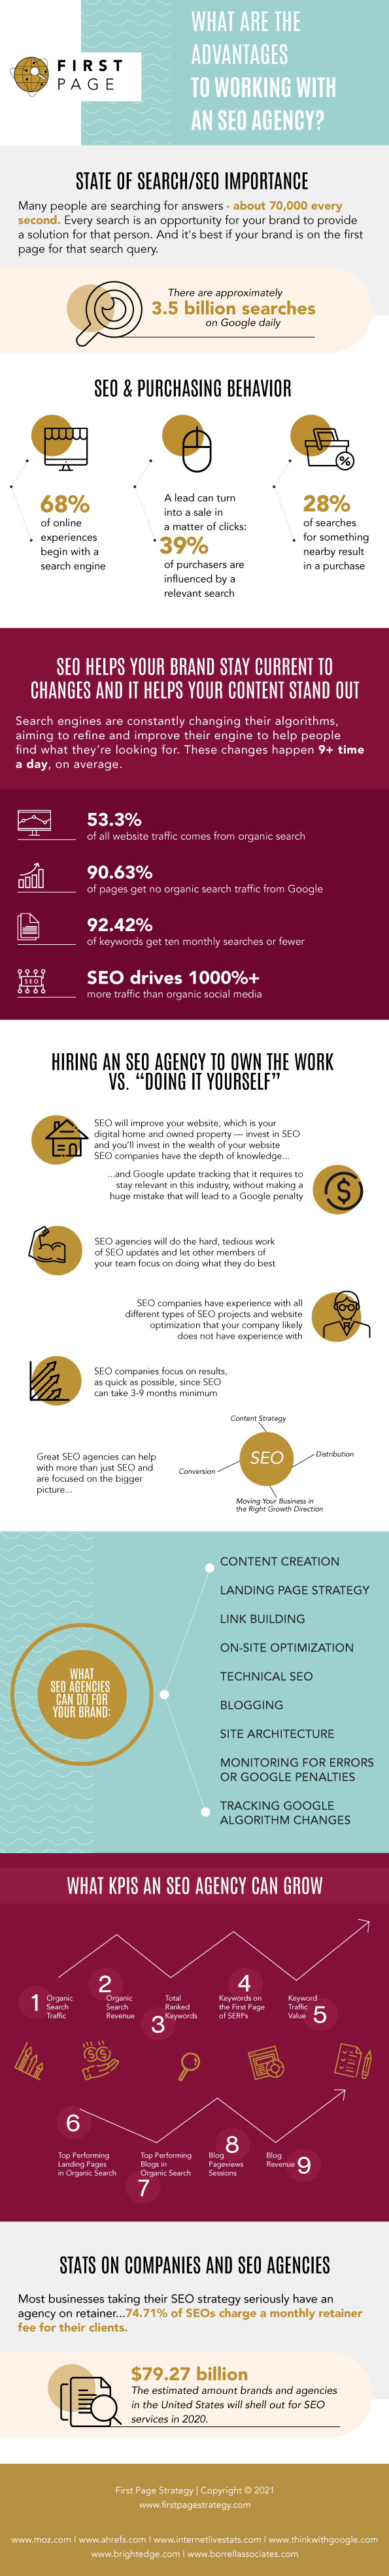 Infographic about The Advantages of Working with an SEO Agency